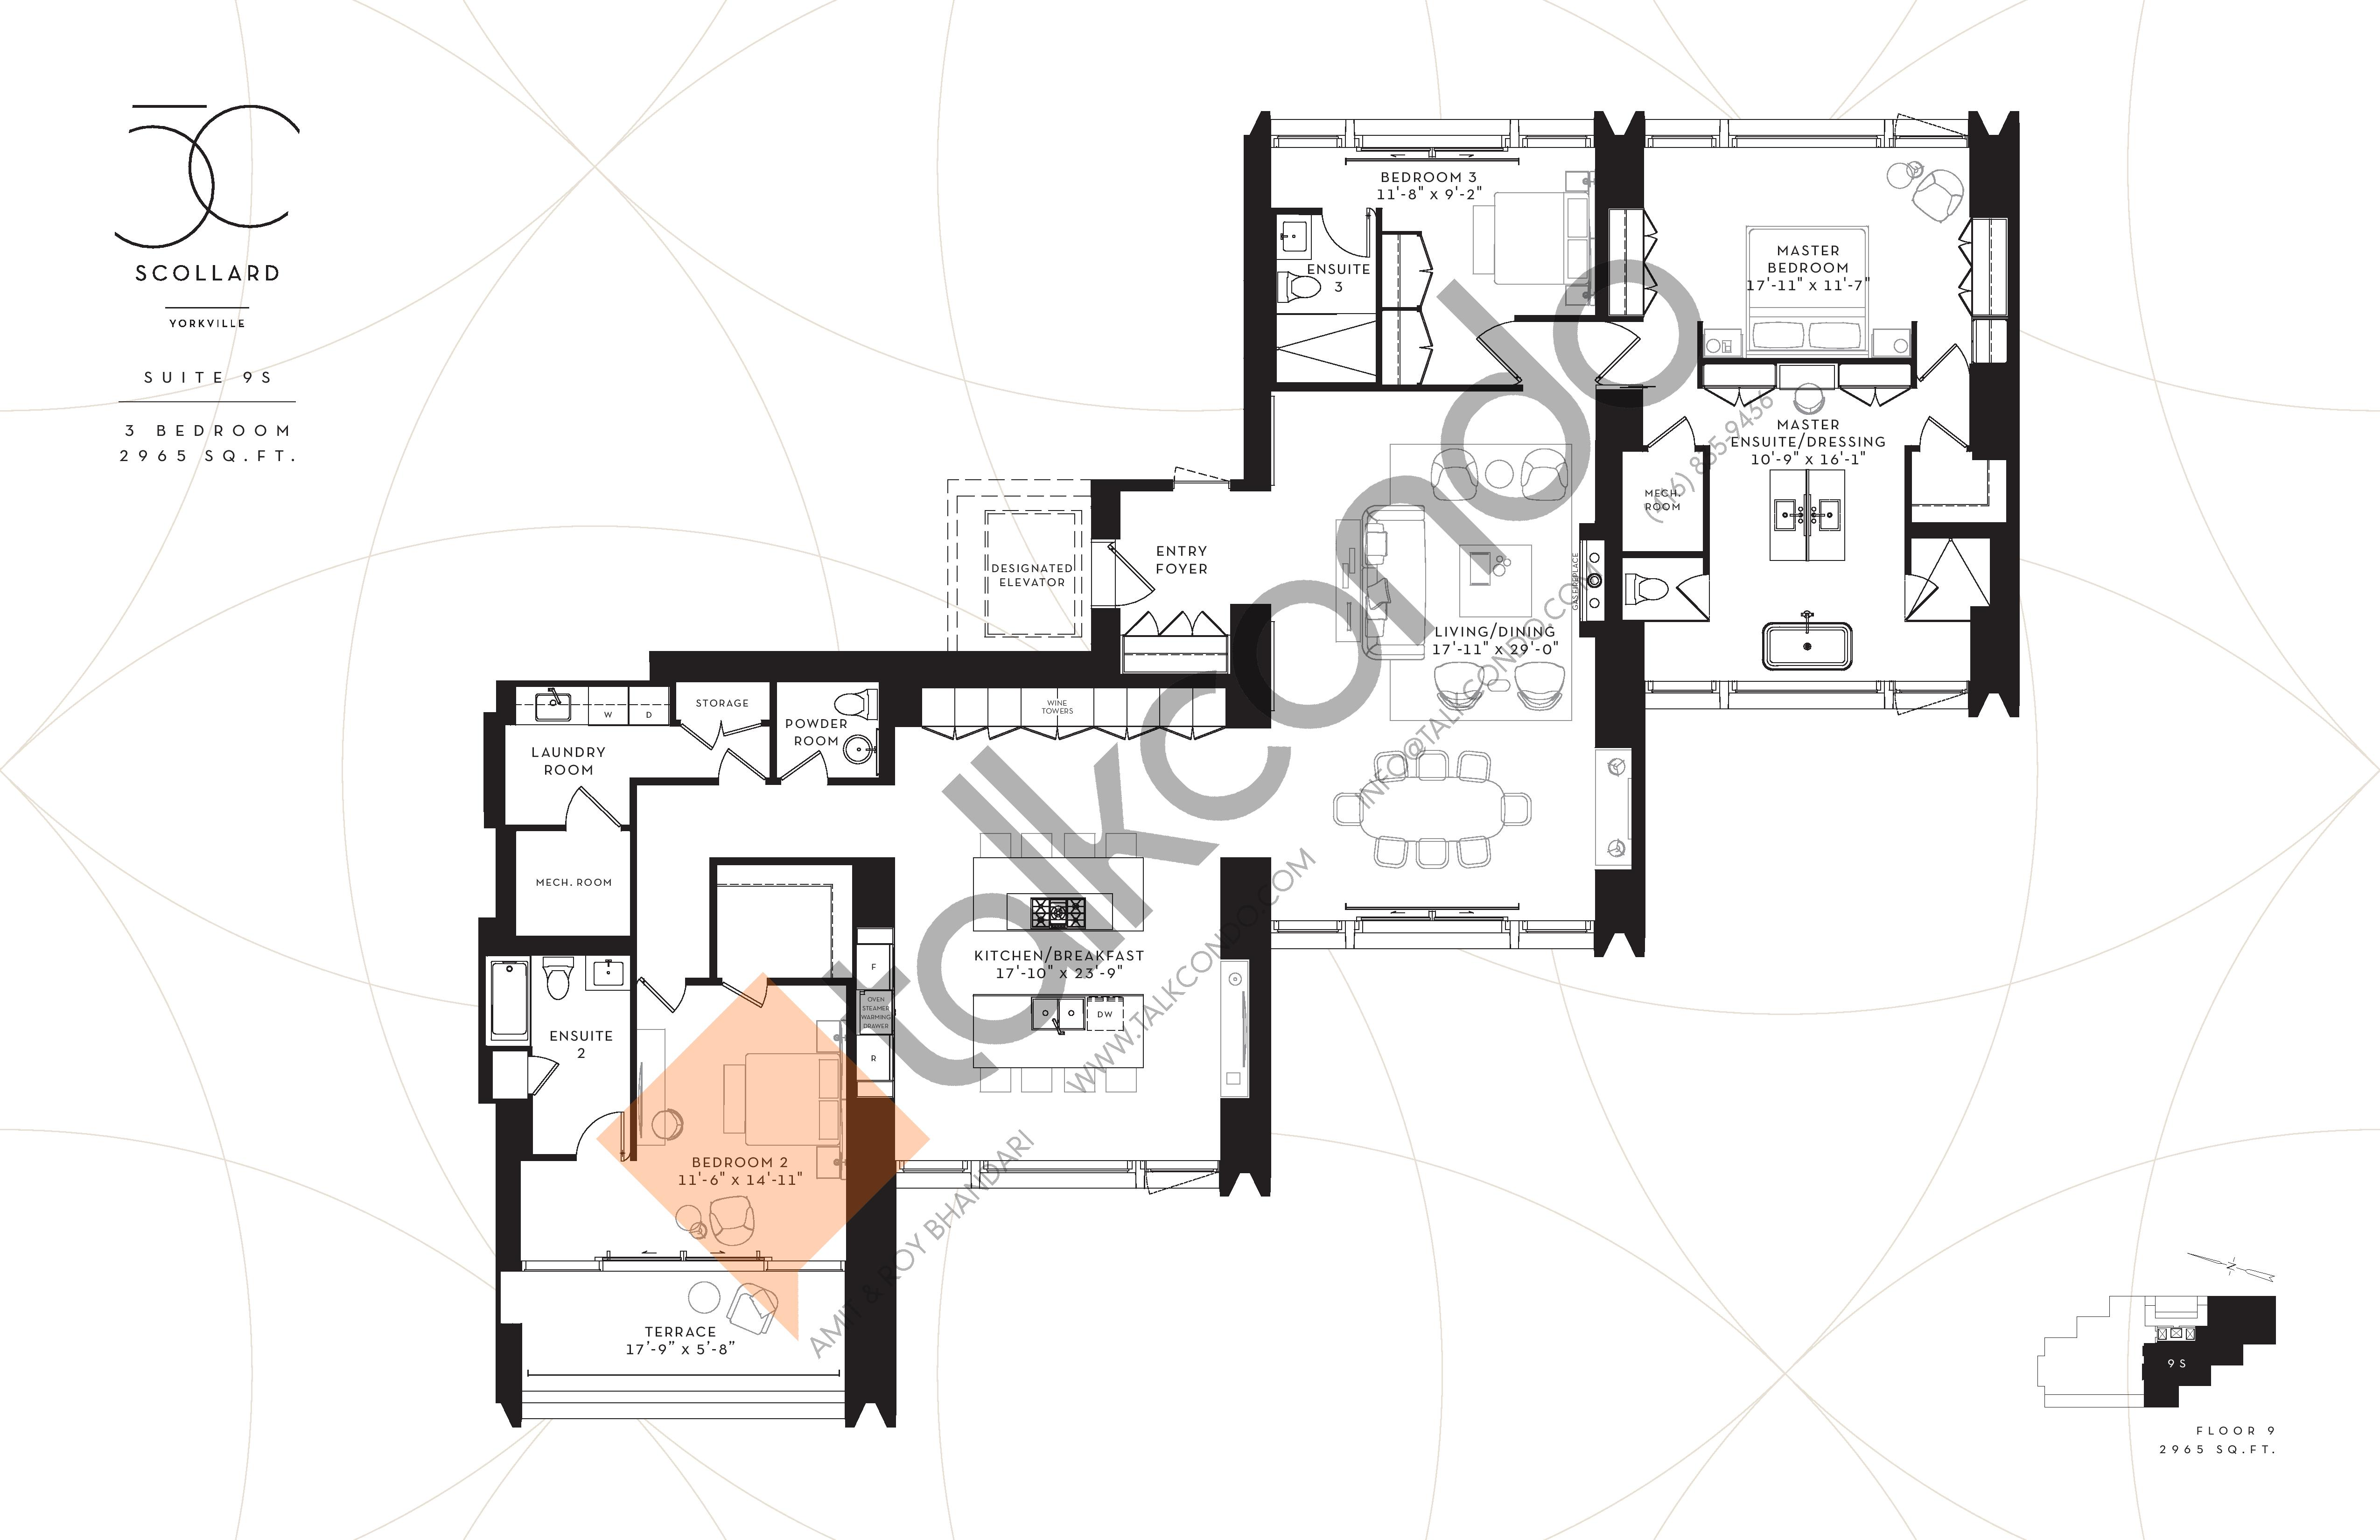 Suite 9S Floor Plan at Fifty Scollard Condos - 2965 sq.ft